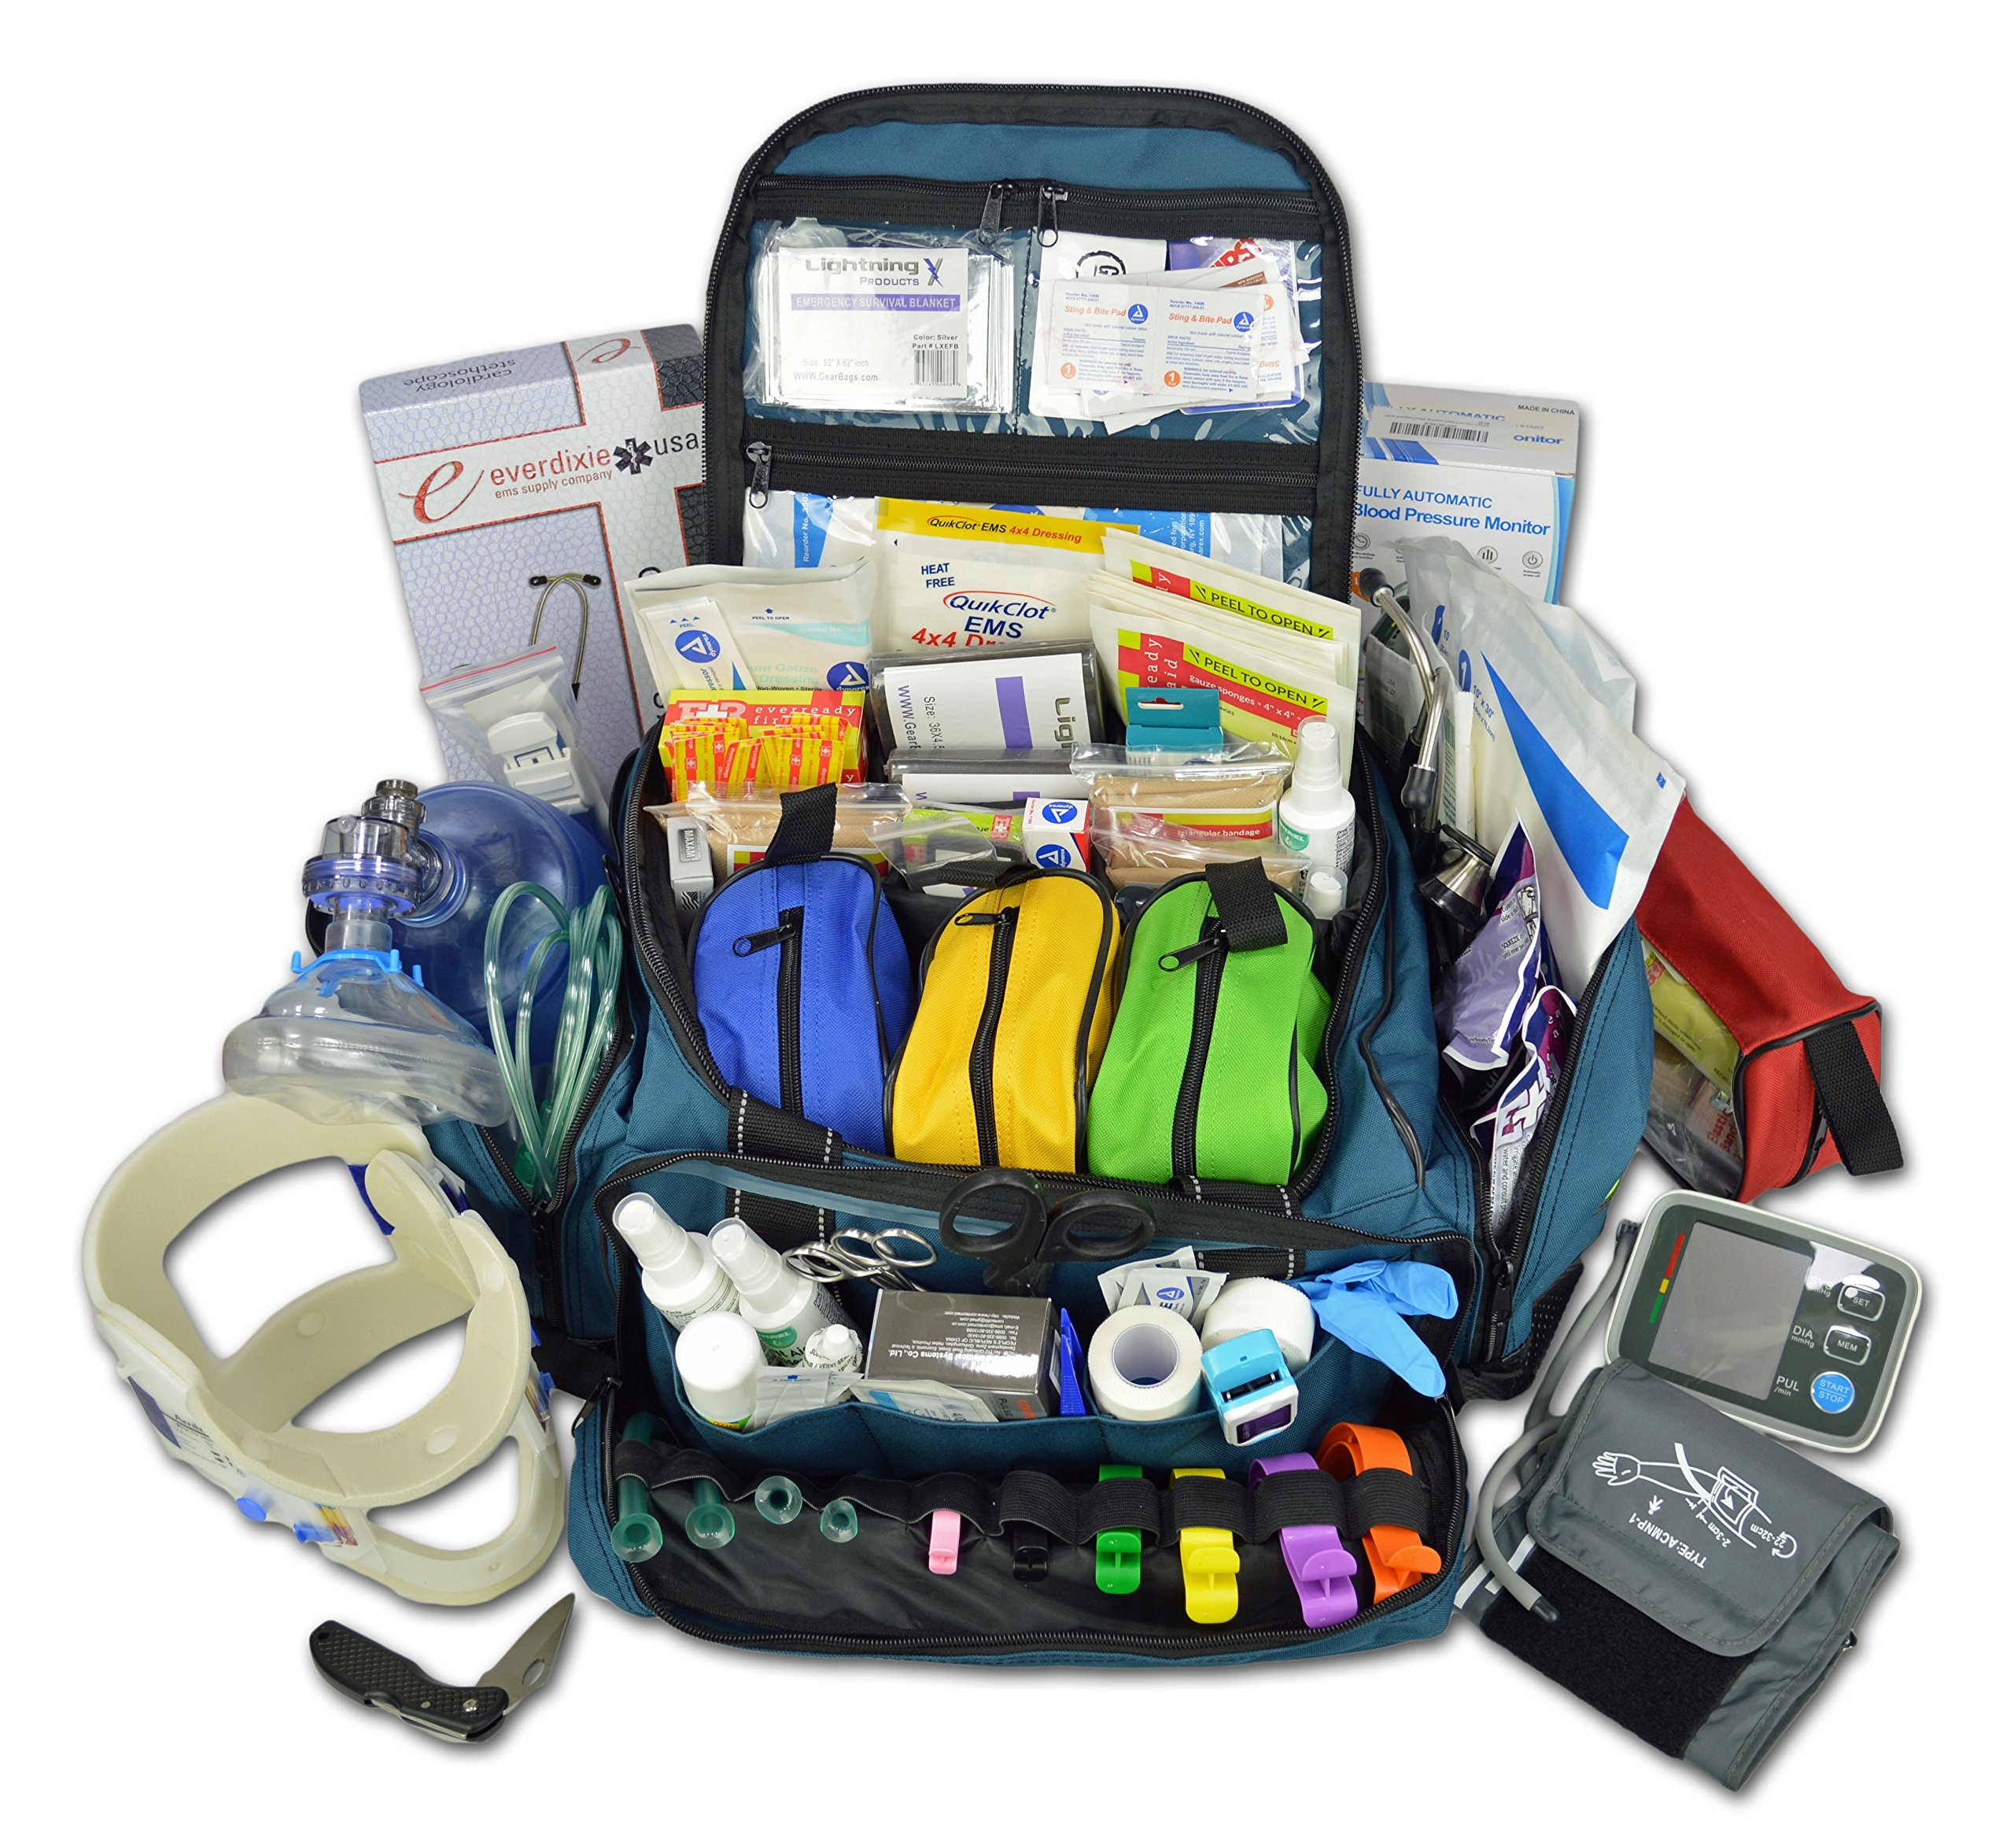 Lightning X Premium Stocked Modular EMS/EMT Trauma First Aid Responder Medical Bag + Kit - Navy Blue by Lightning X Products